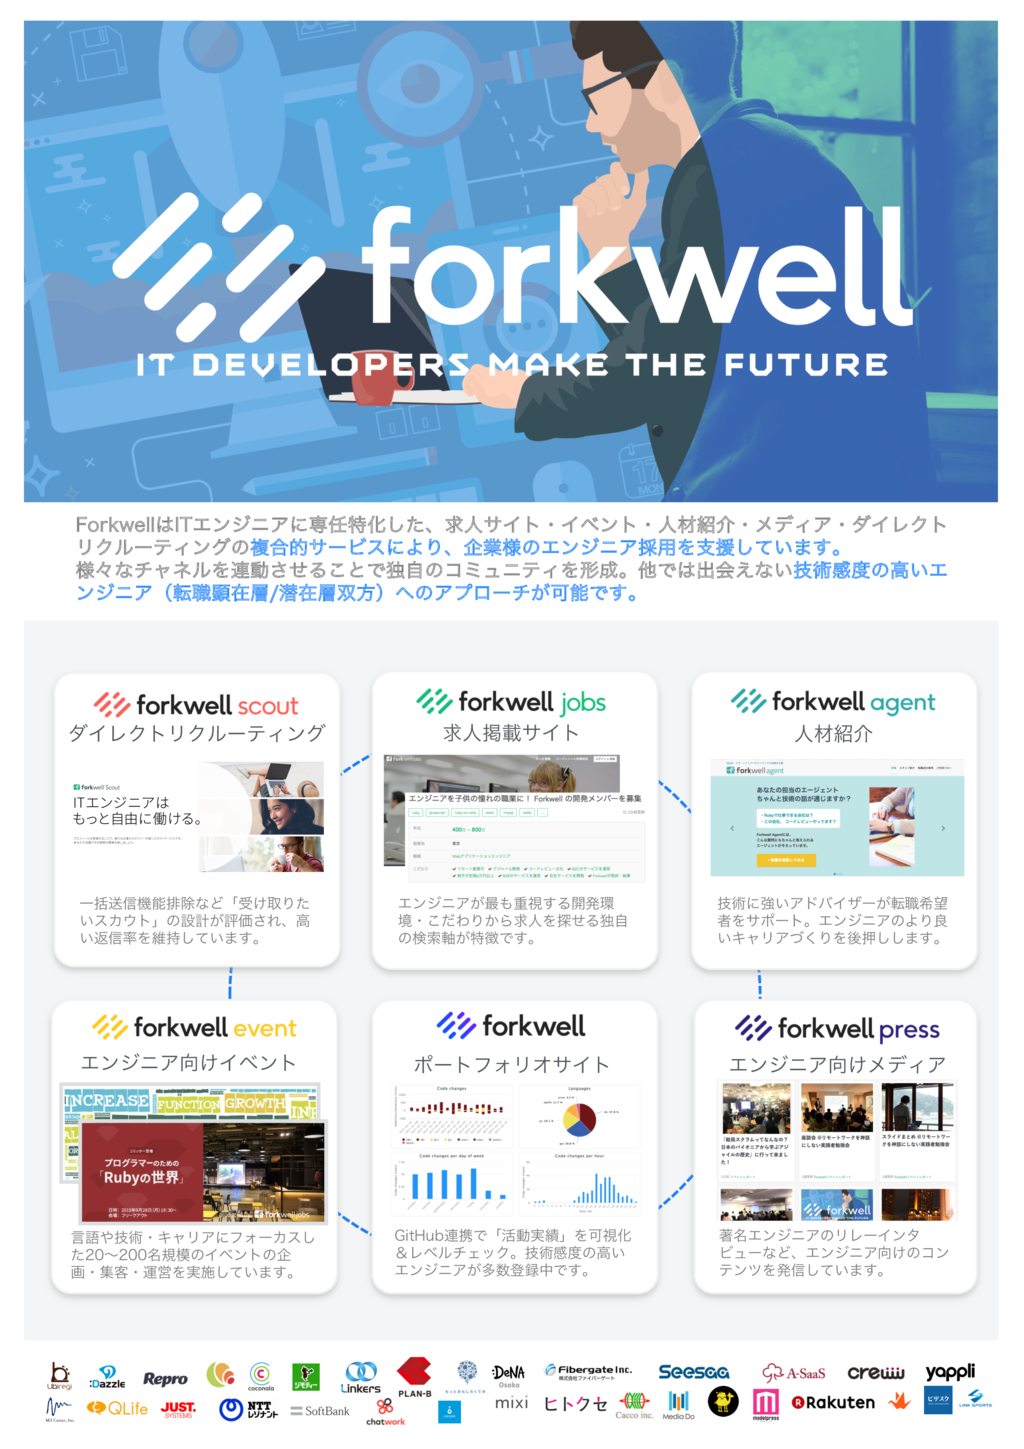 Forkwell採用支援サービスの資料